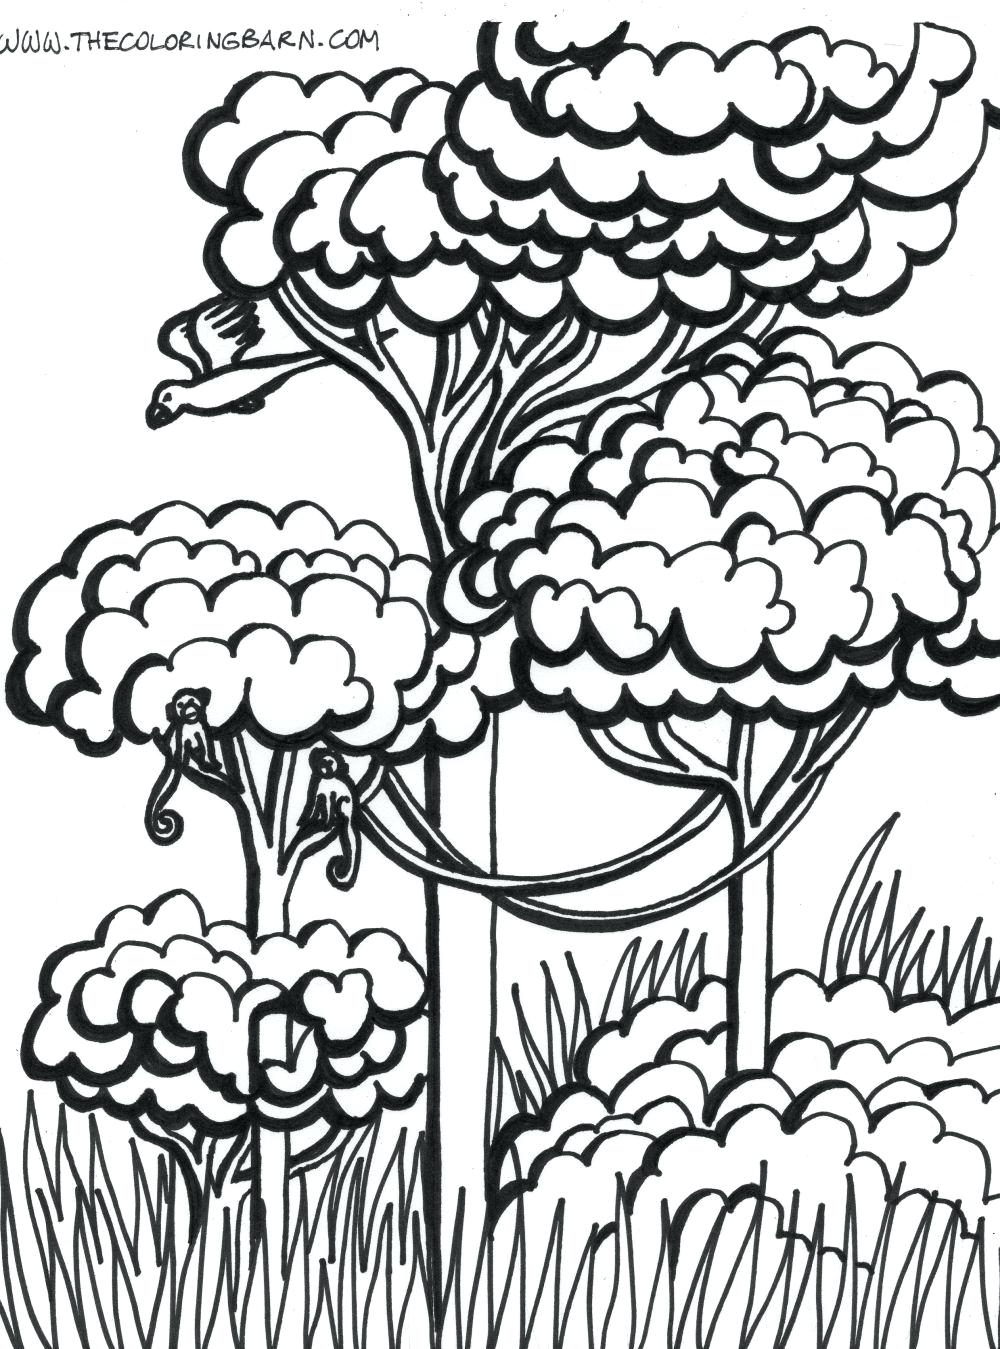 Rainforest Trees Drawing at GetDrawings.com | Free for personal use ...